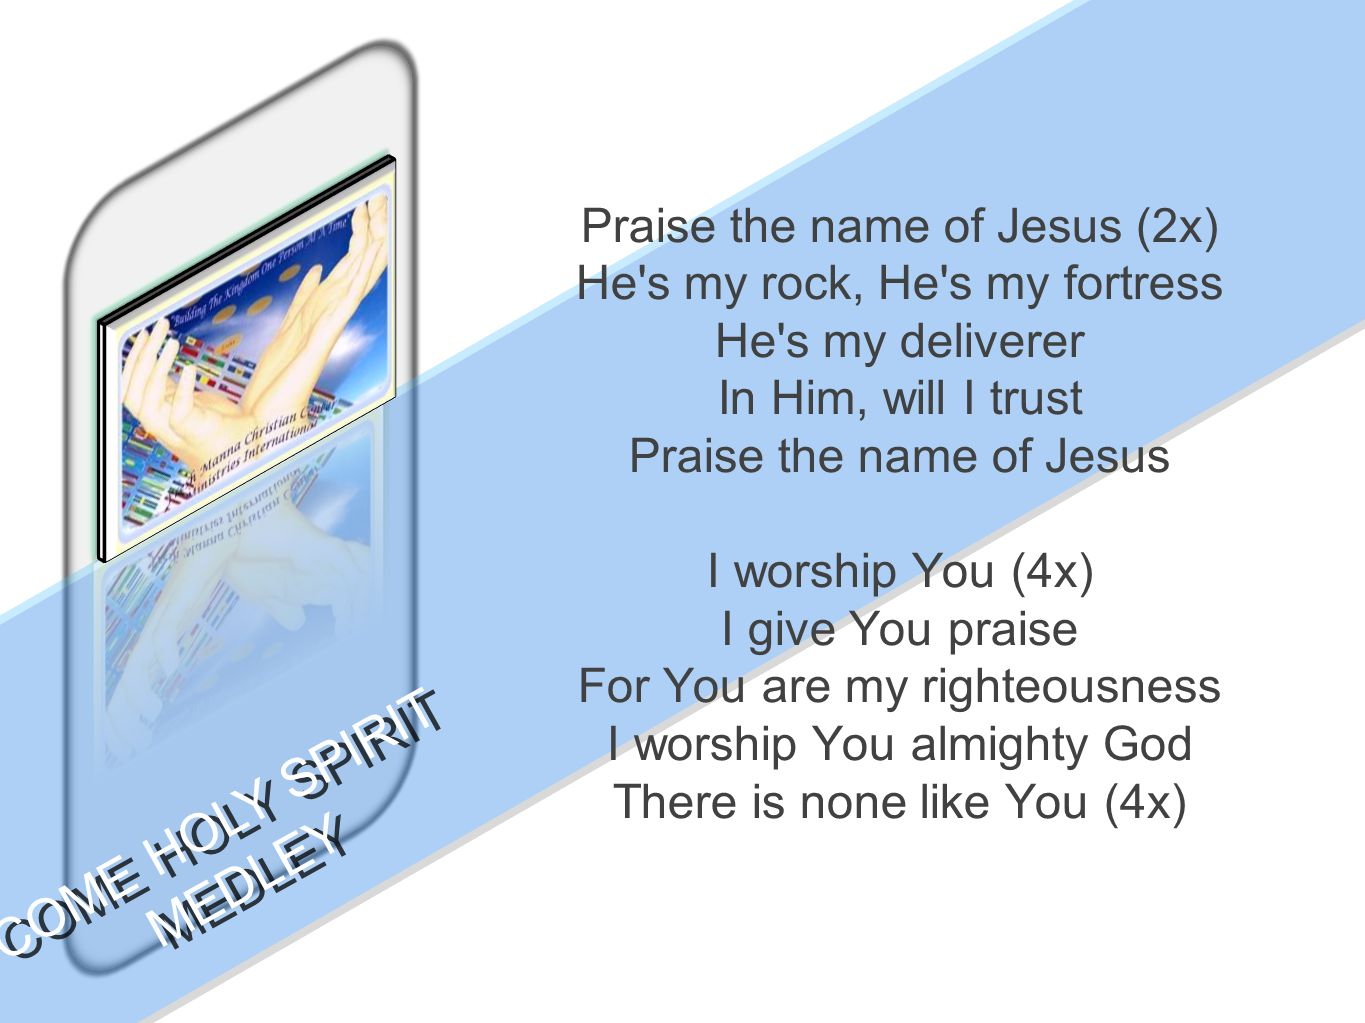 Praise the name of Jesus (2x) He s my rock, He s my fortress He s my deliverer In Him, will I trust Praise the name of Jesus I worship You (4x) I give You praise For You are my righteousness I worship You almighty God There is none like You (4x) COME HOLY SPIRIT MEDLEY COME HOLY SPIRIT MEDLEY